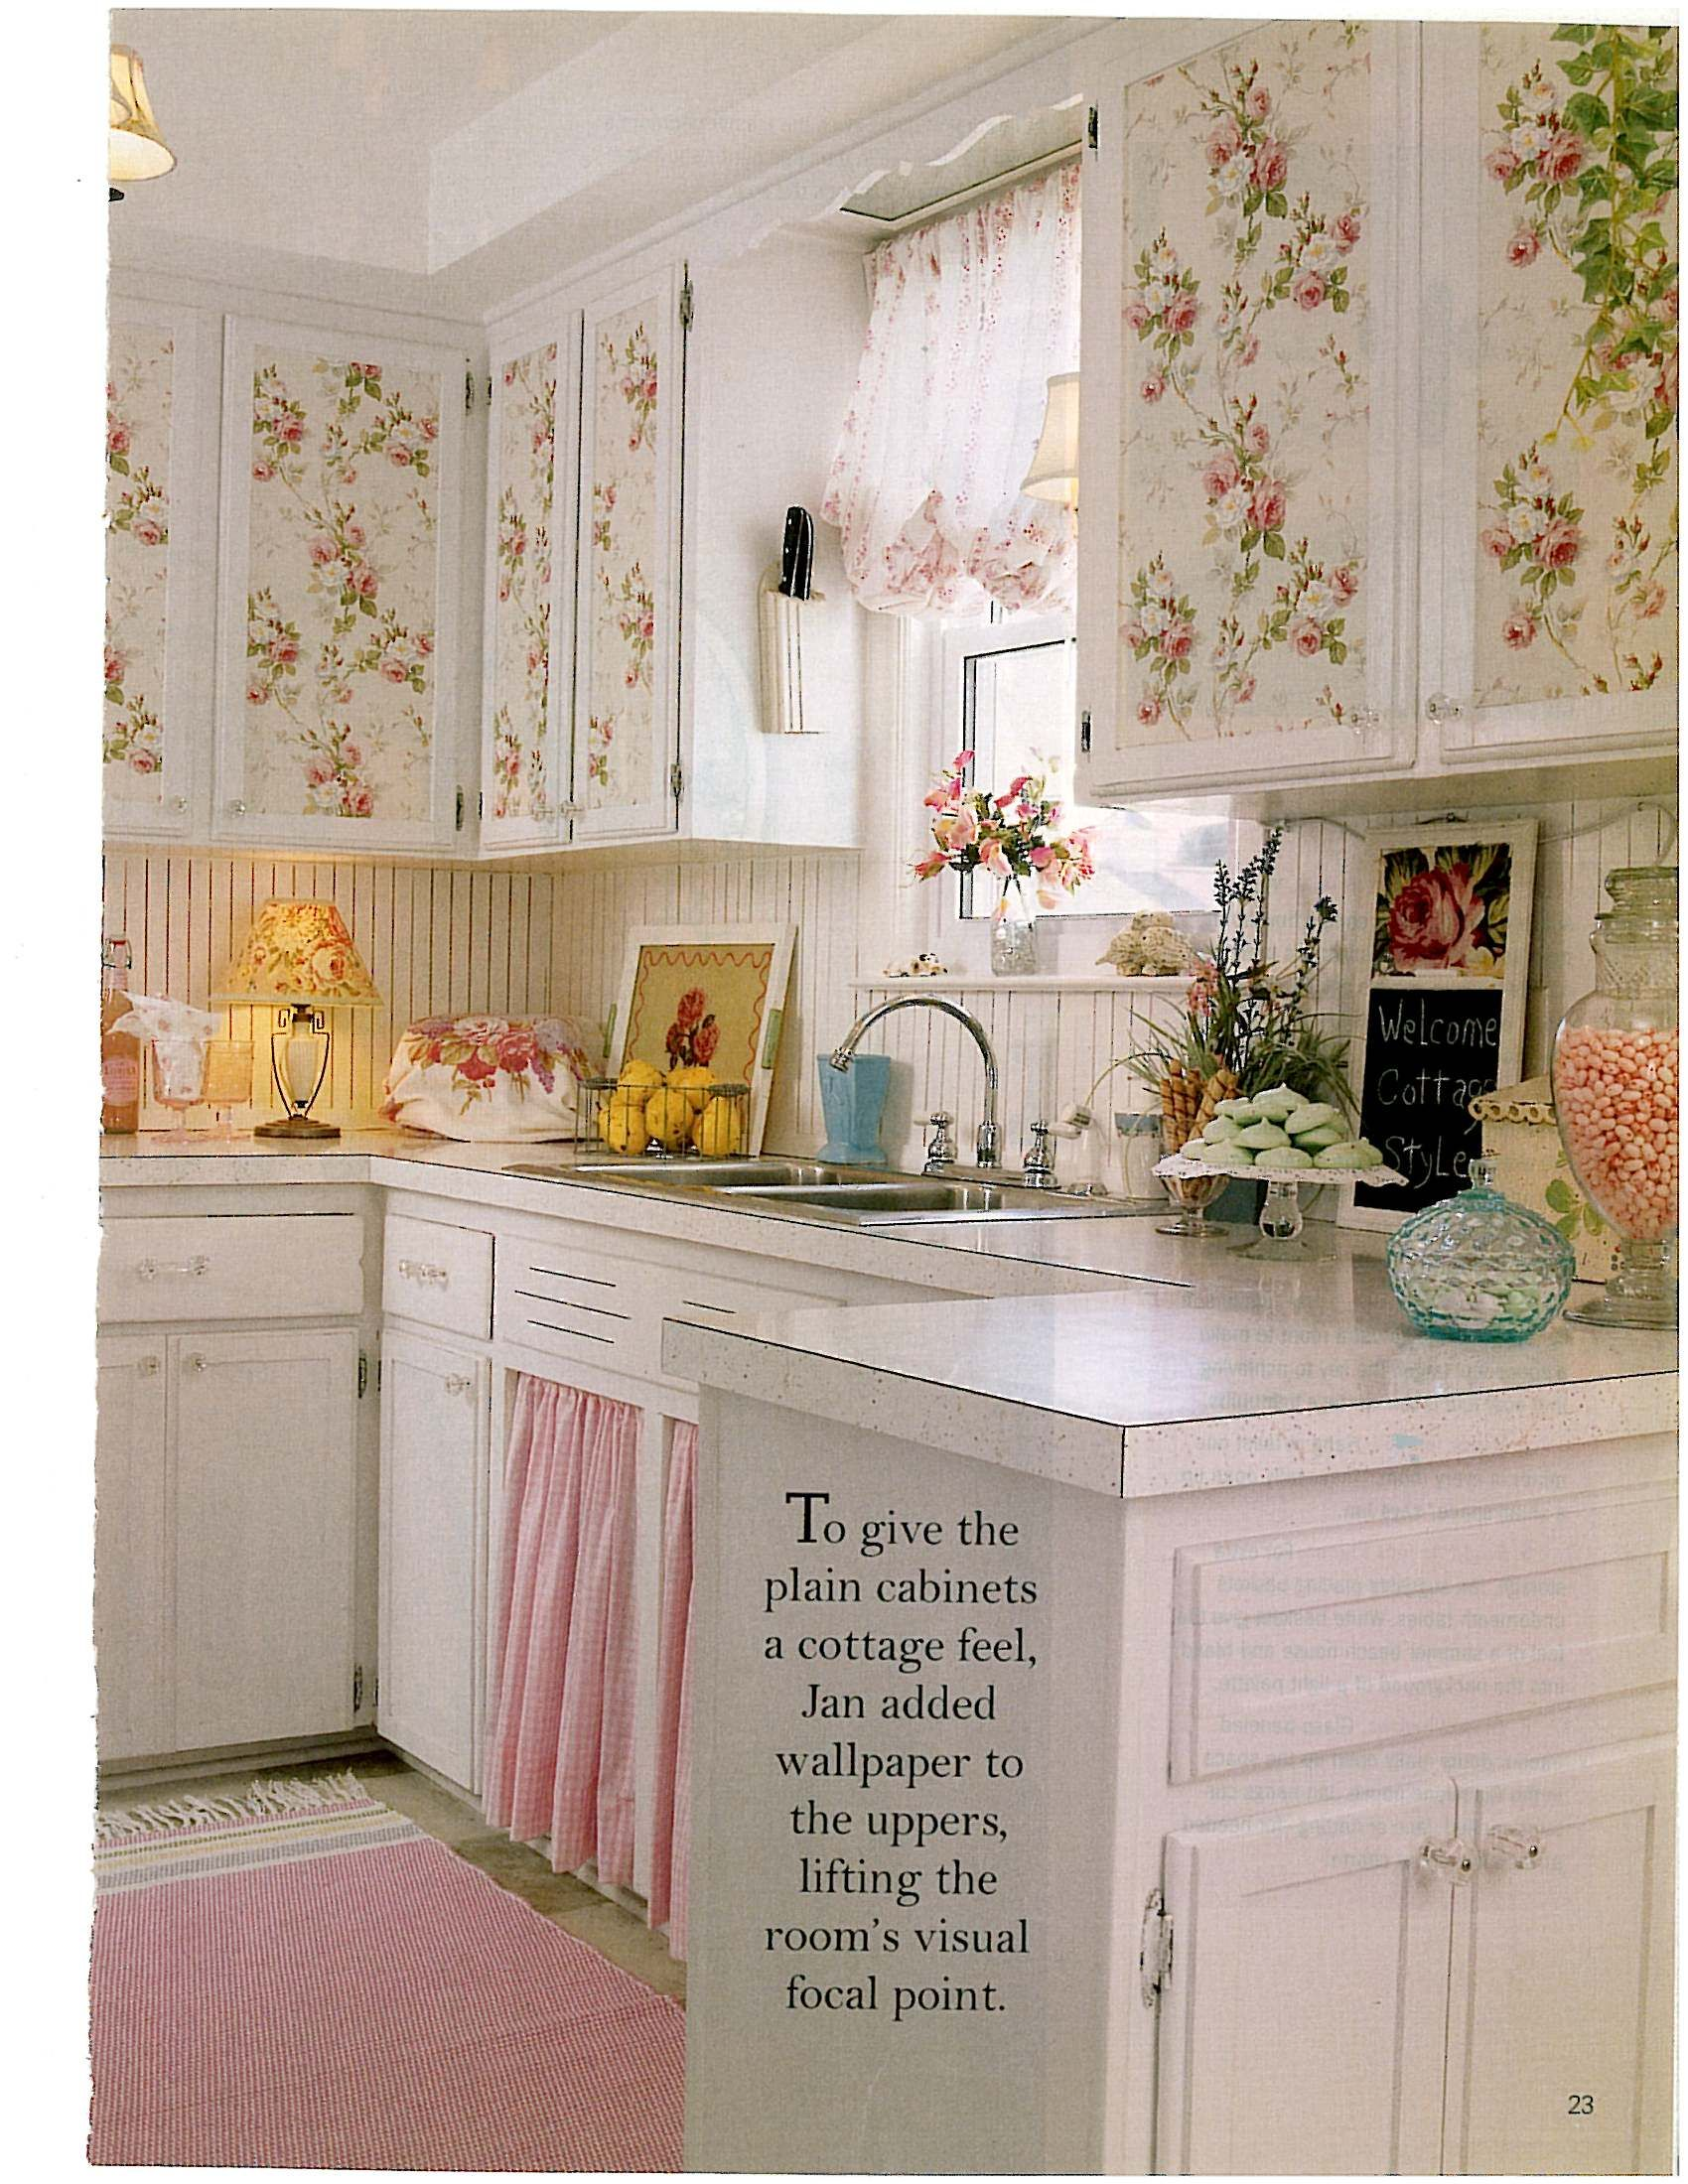 floral wallpaper with roses on cupboards attractive displays on eye for design decorating vintage cottage style interiors love the floral cabinets